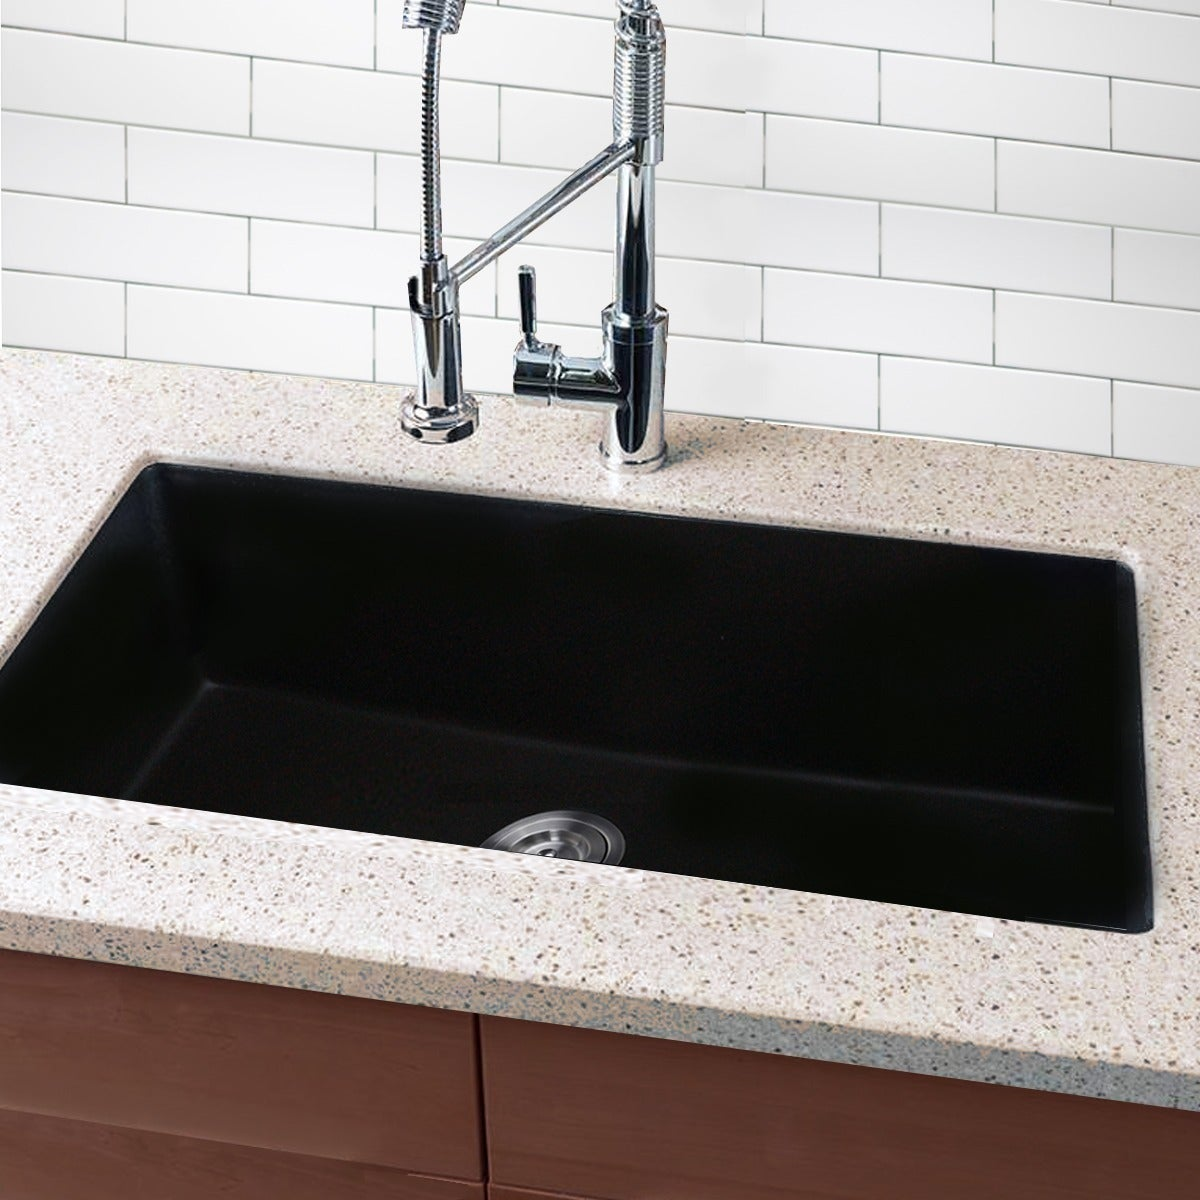 Highpoint Collection Granite Composite 33 Inch Single Bowl Black Undermount Kitchen Sink Free Shipping Today 9103014